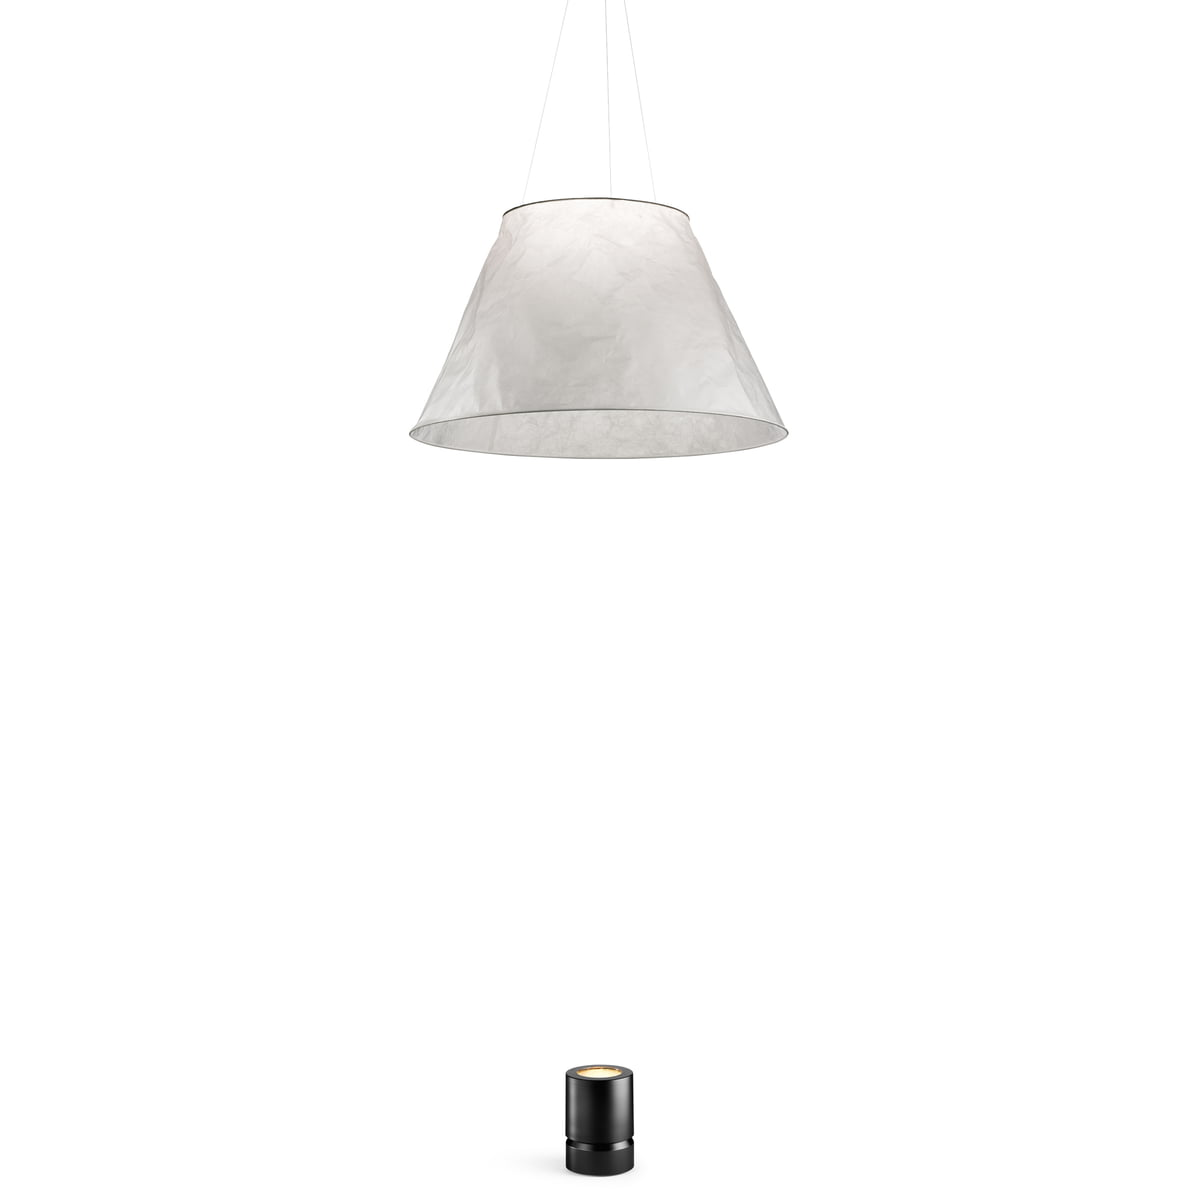 The shade pendant lamp by flos in the shop flos shade pendant lamp free mozeypictures Choice Image